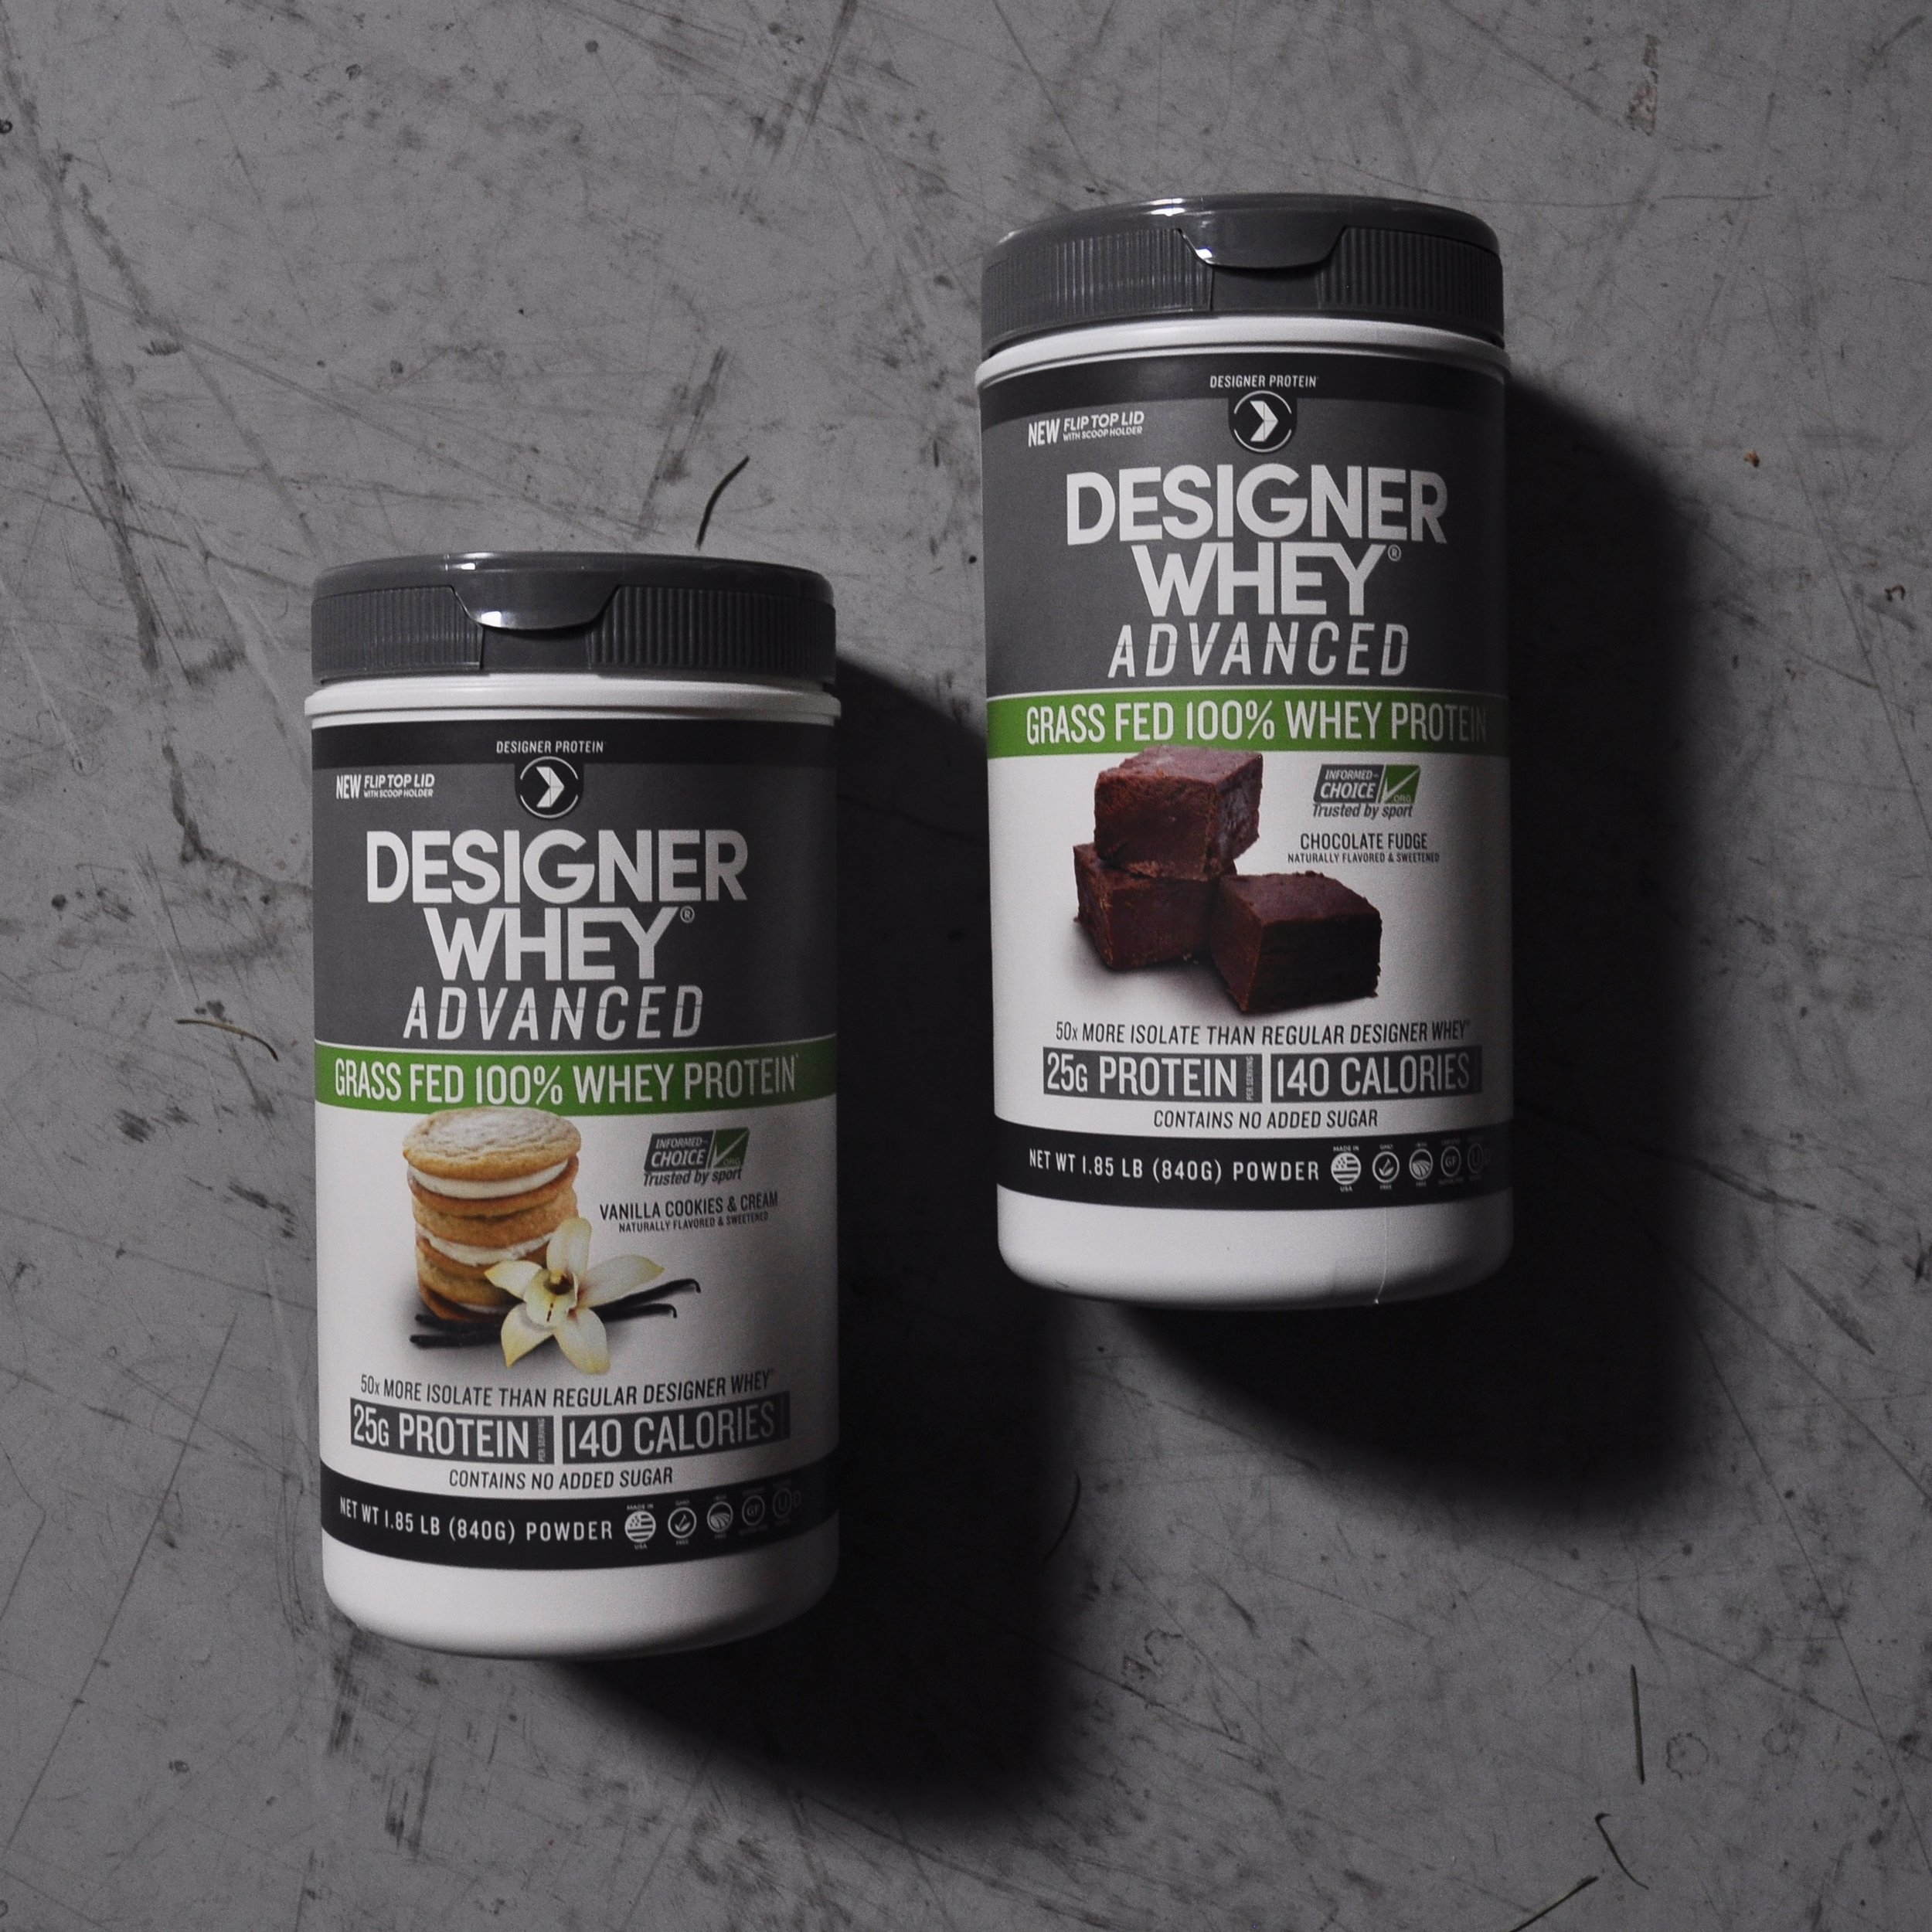 Designer Whey Advanced -collaborated on front panel design, in charge of designing back and nutritional panel layouts.